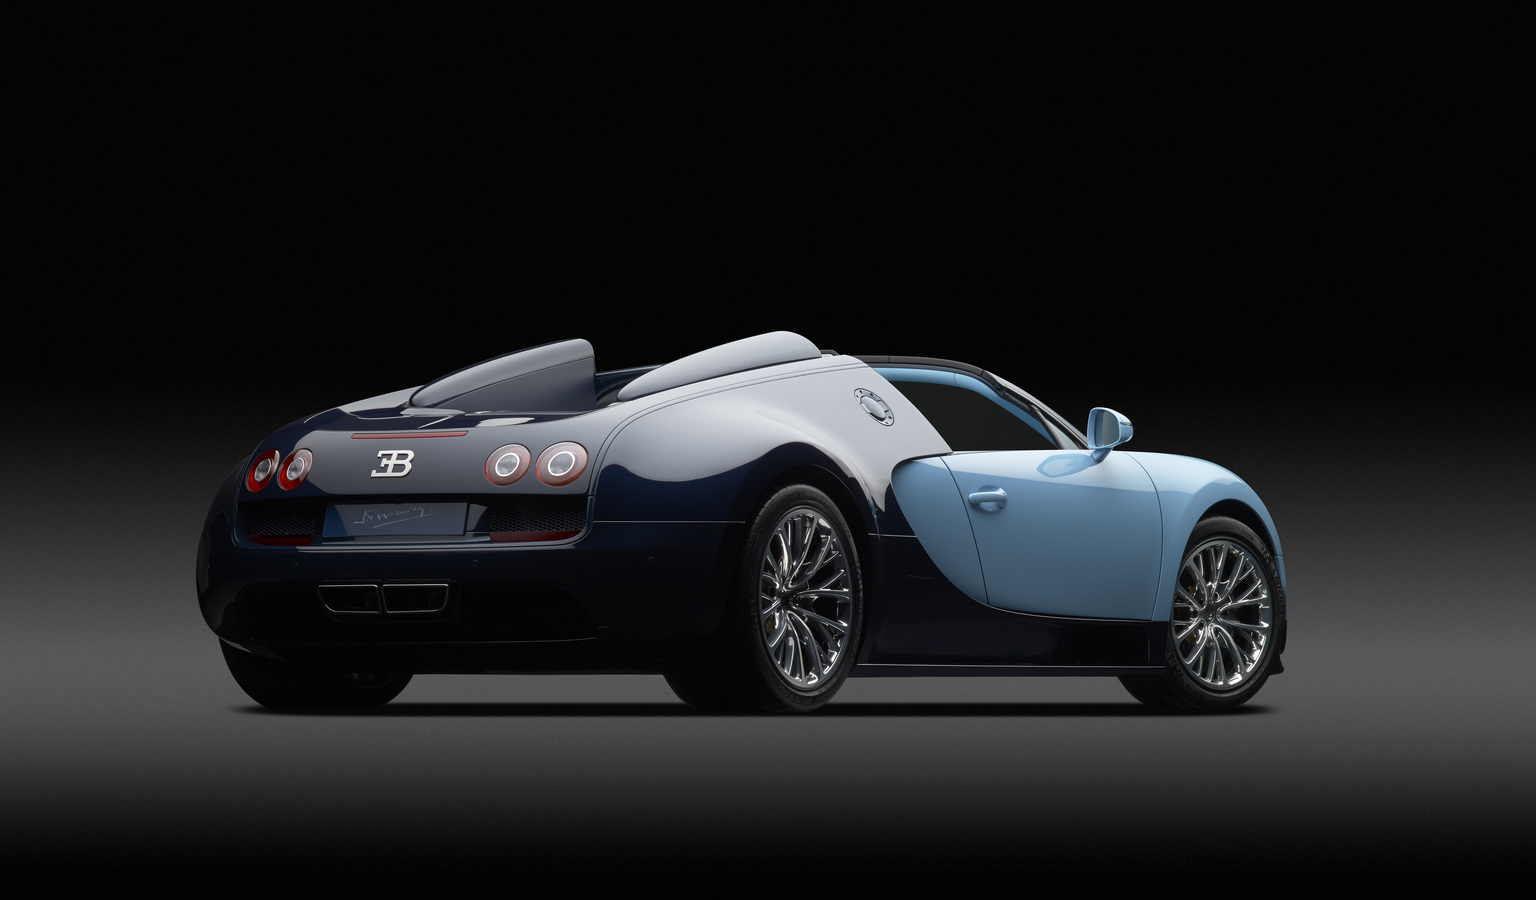 2013 bugatti 16 4 veyron grand sport vitesse jean pierre wimille superc. Black Bedroom Furniture Sets. Home Design Ideas